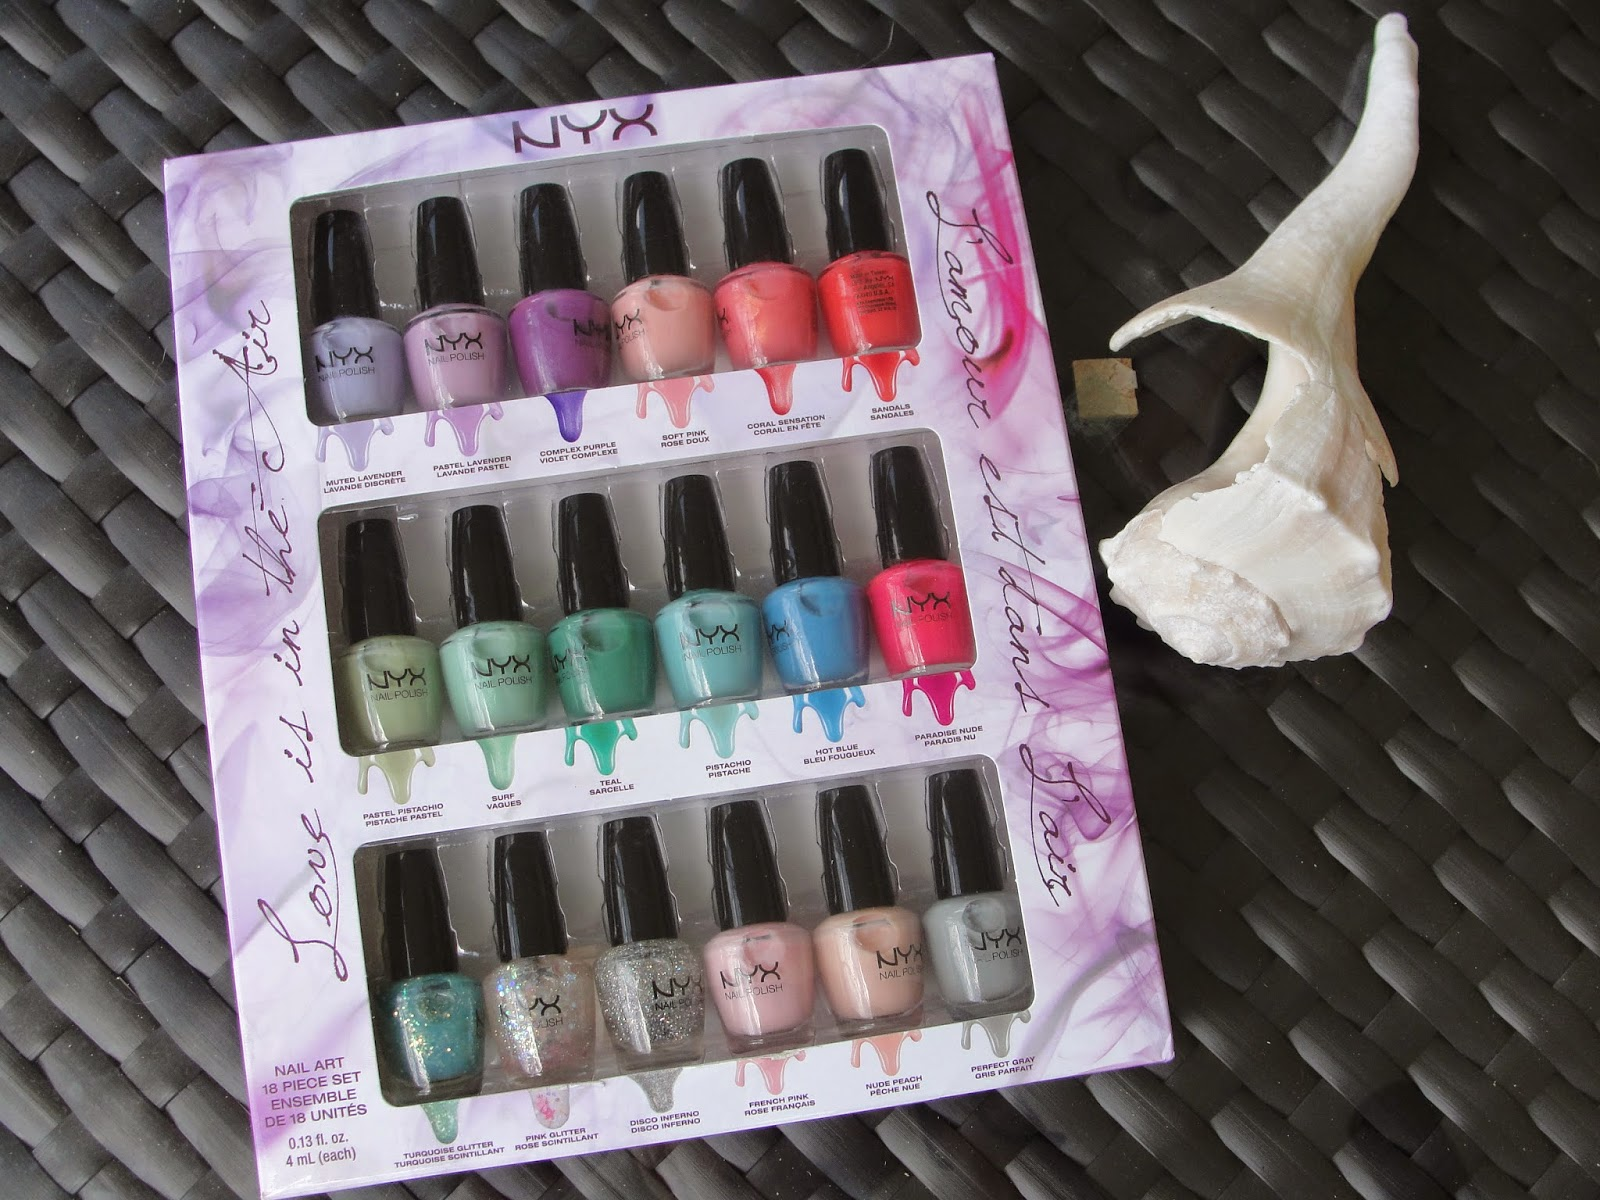 I Keep My Box As A Storage For These Cute Nail Polishes